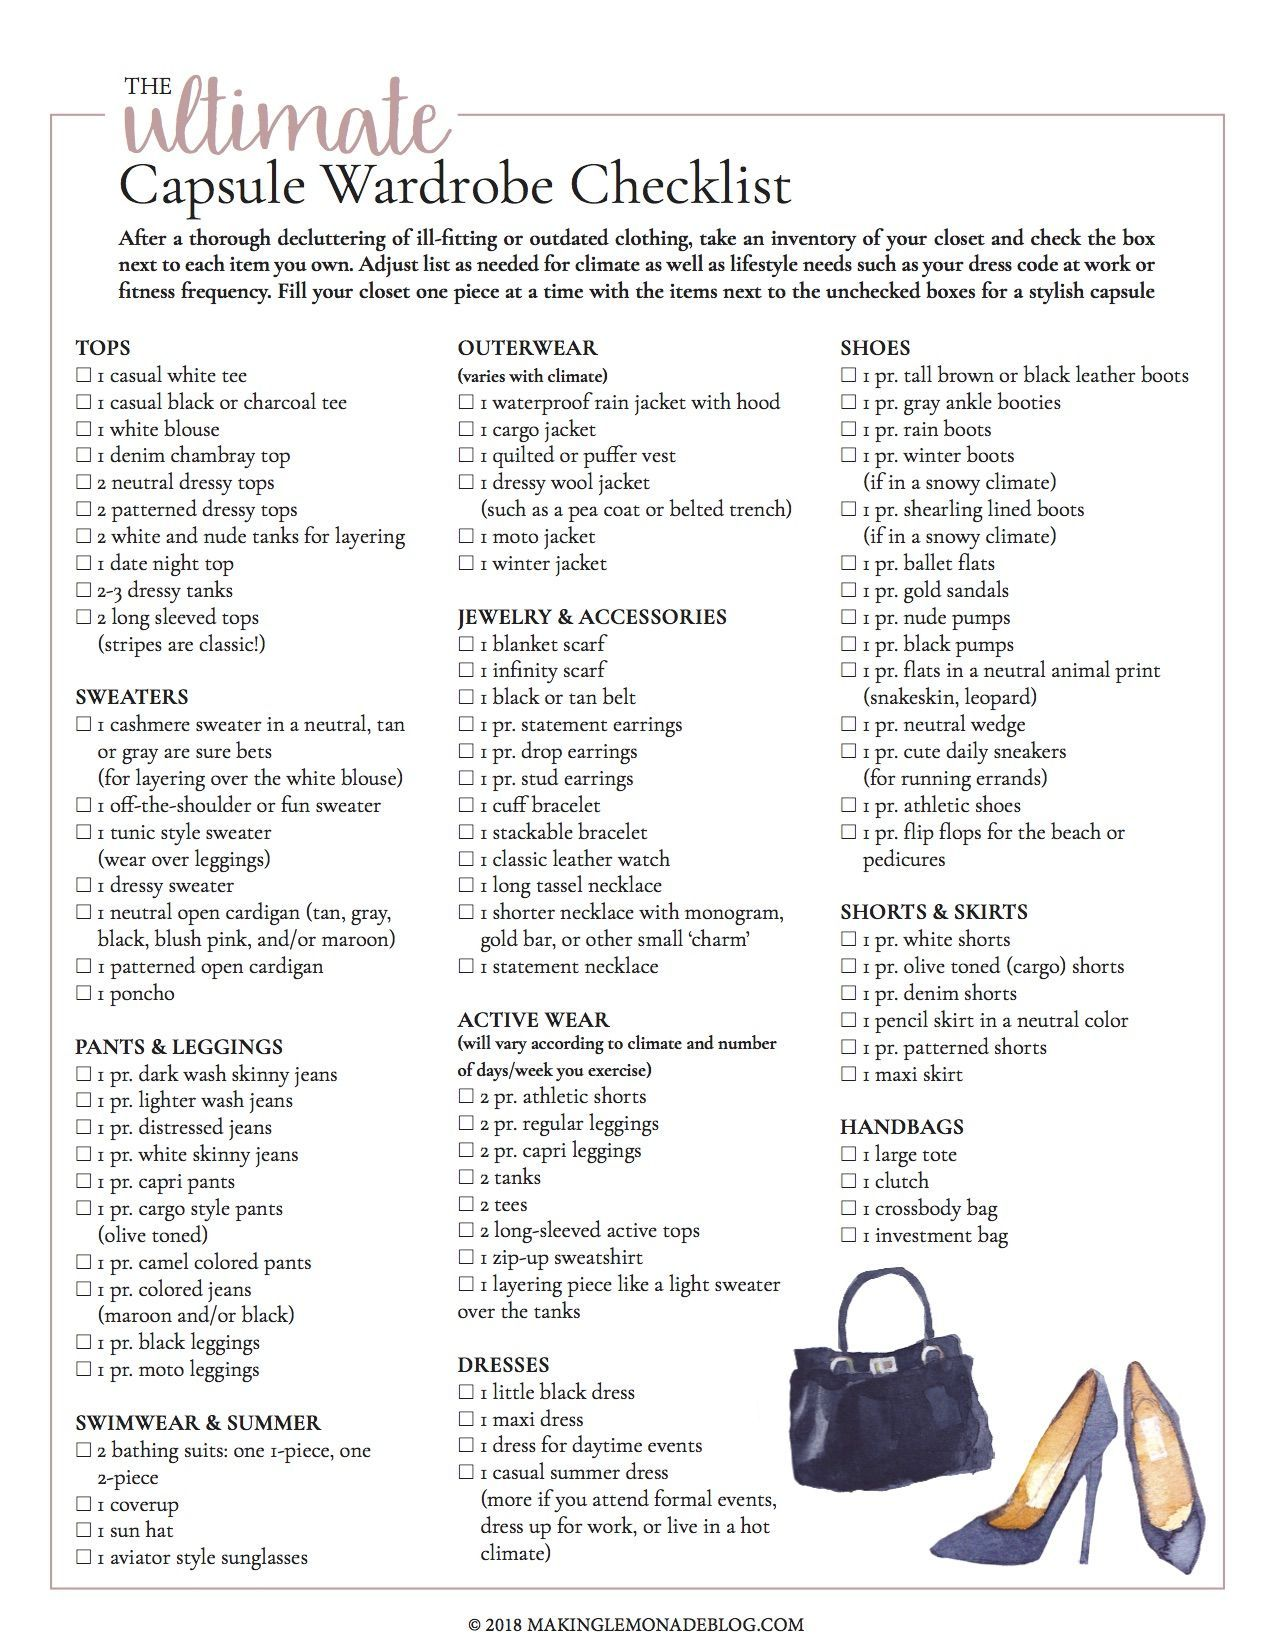 This Free Printable Ultimate Capsule Wardrobe Checklist Is